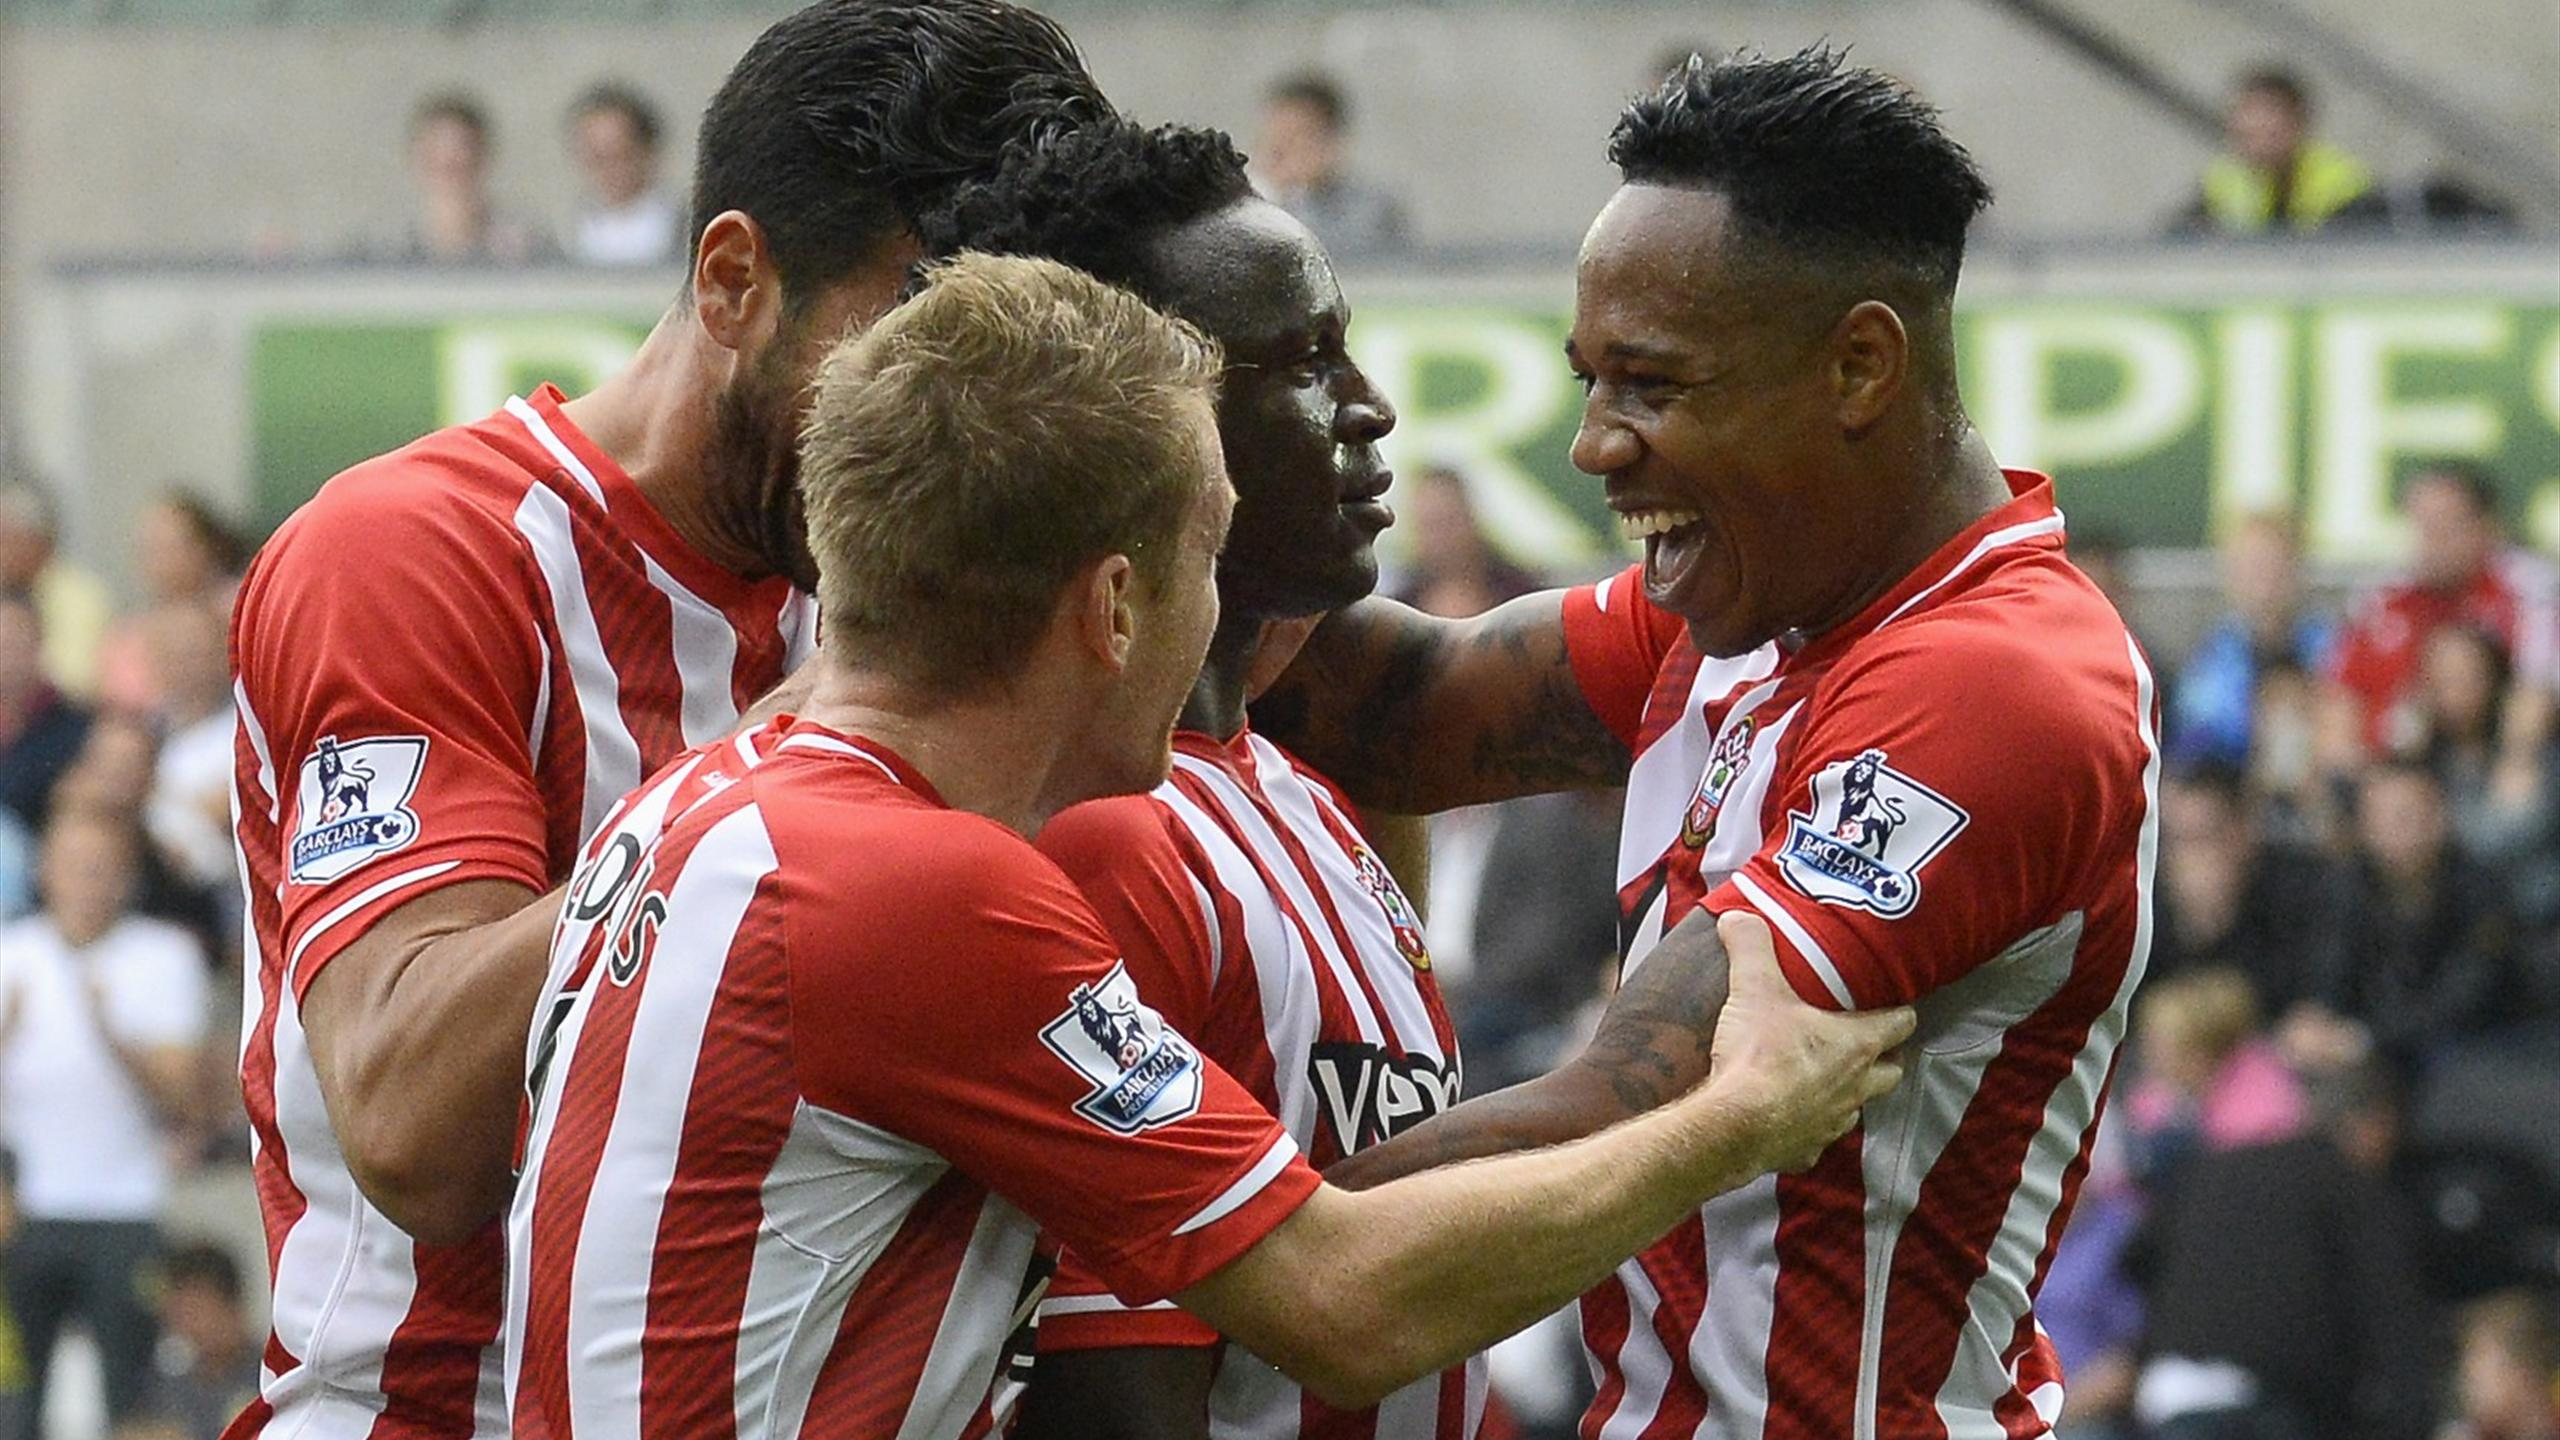 Video: Southampton vs Queens Park Rangers